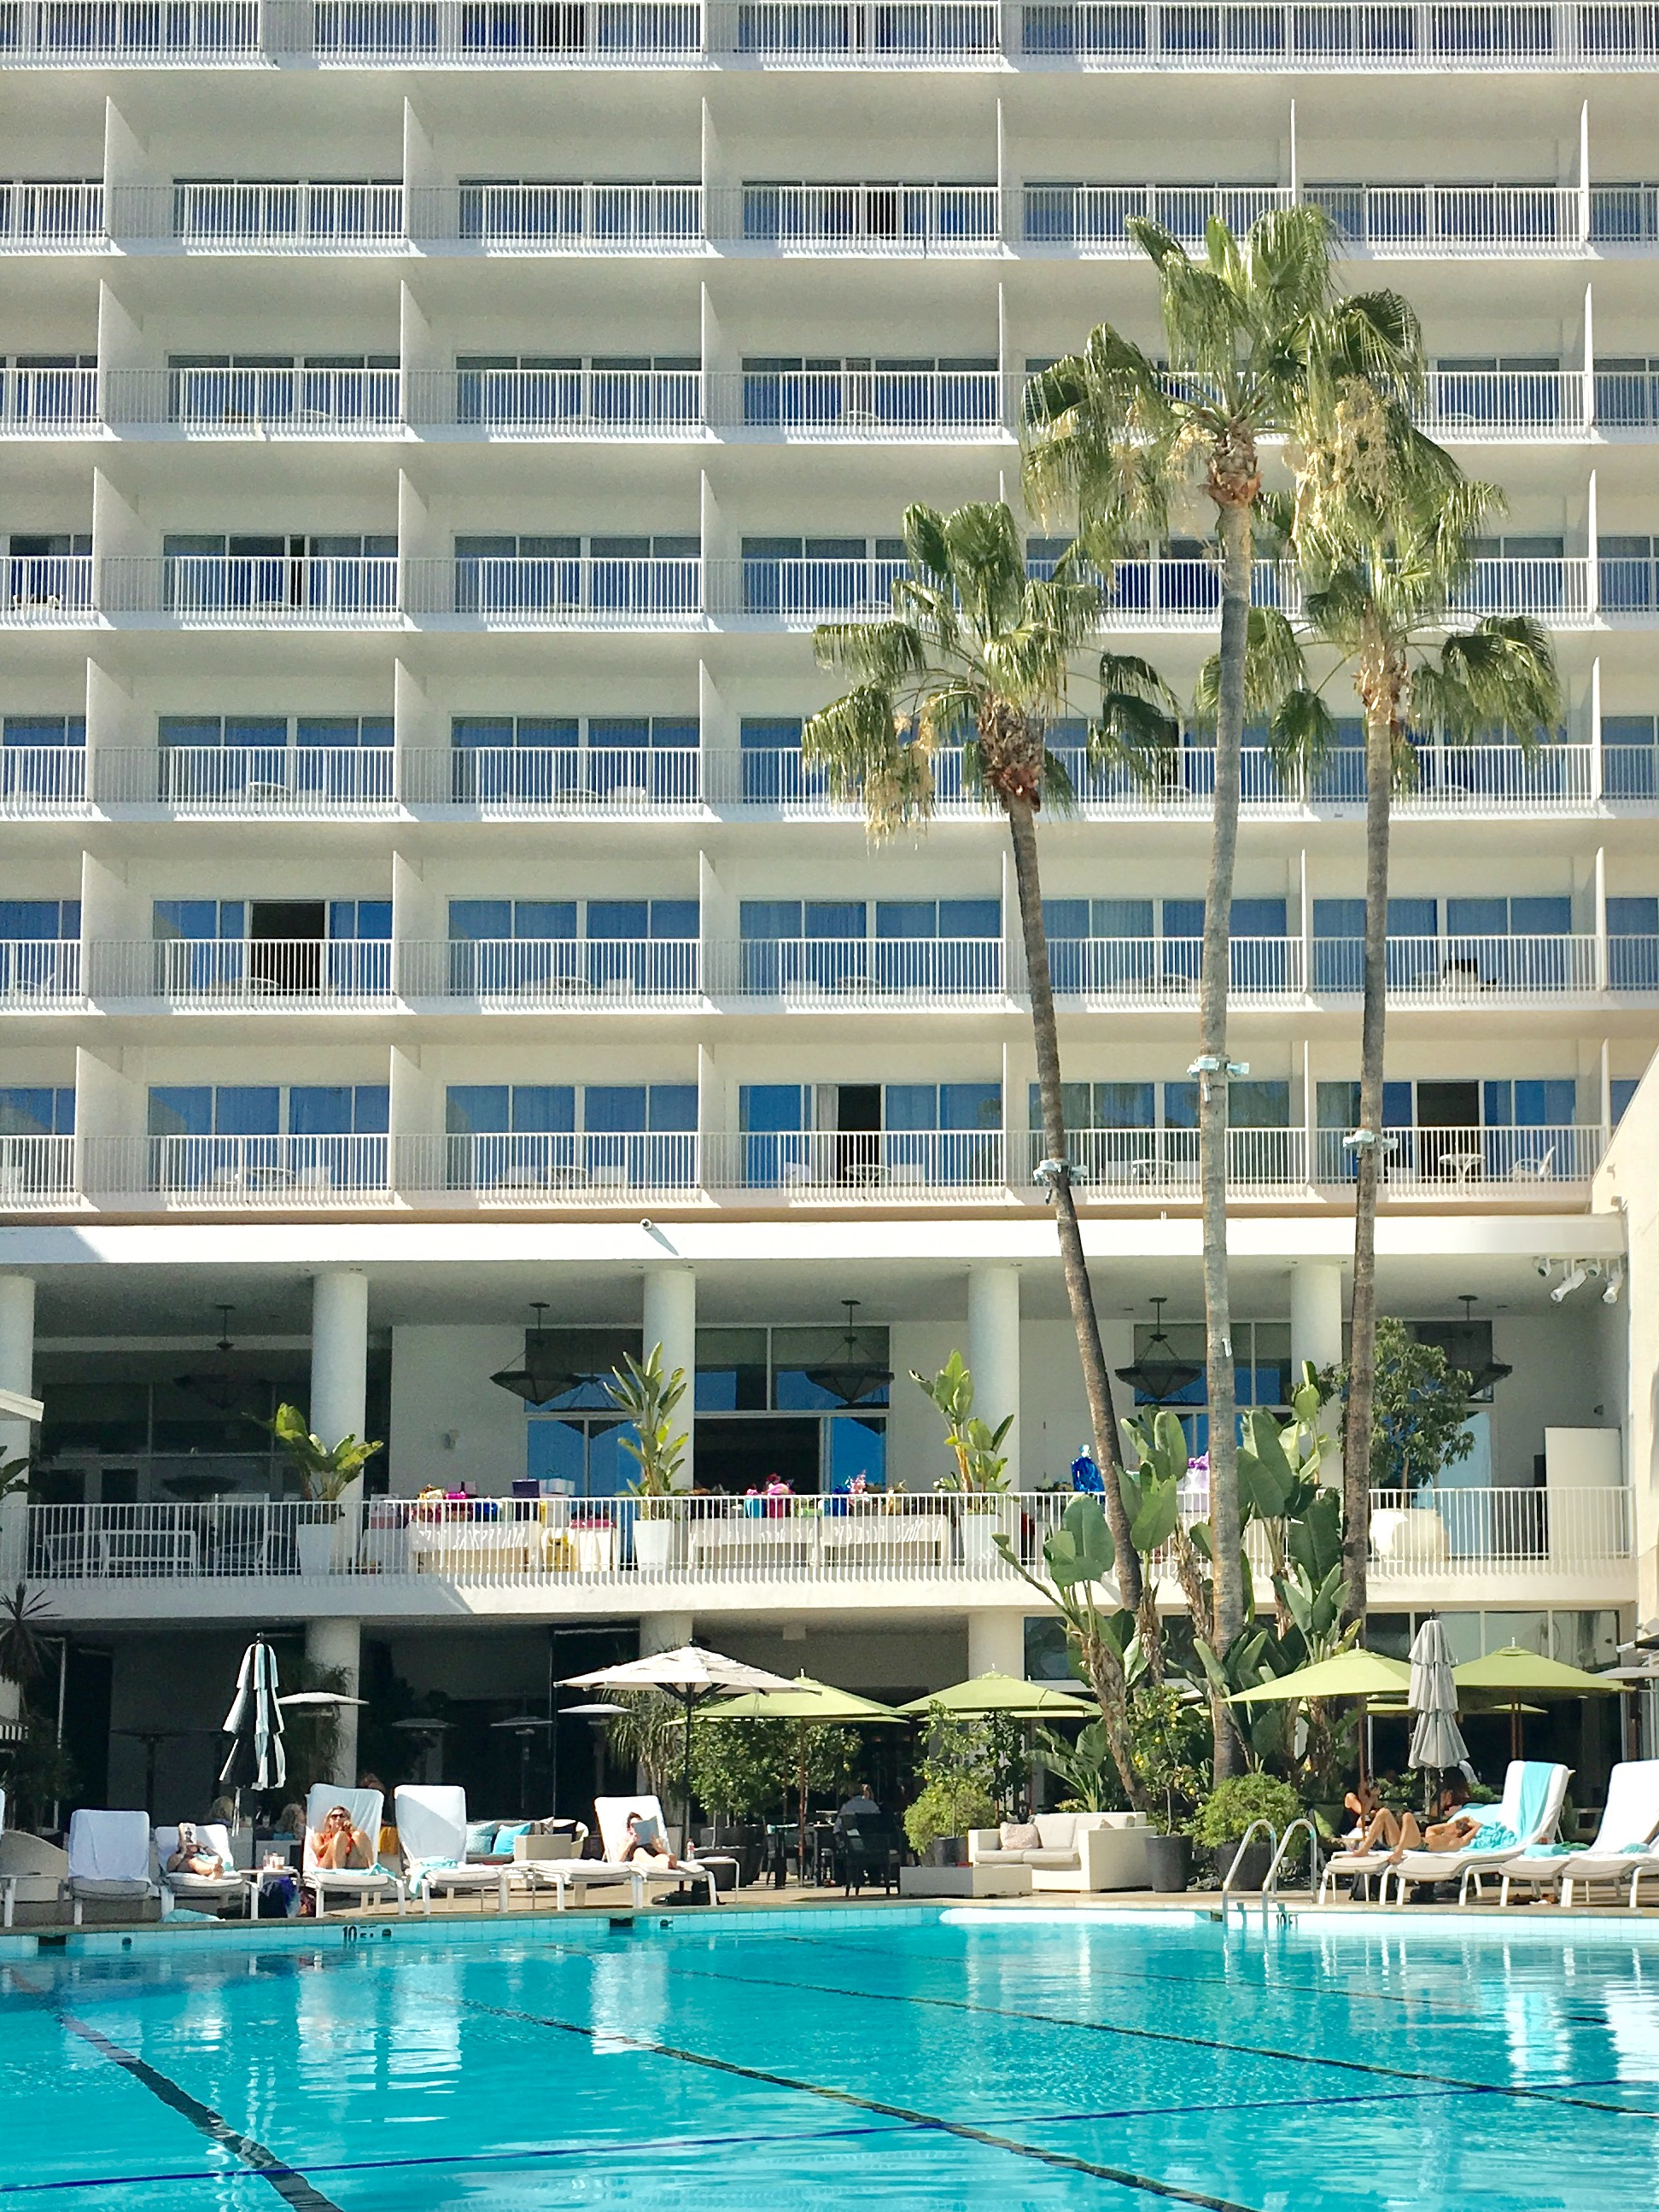 Our conference host, the iconic Beverly Hilton Hotel